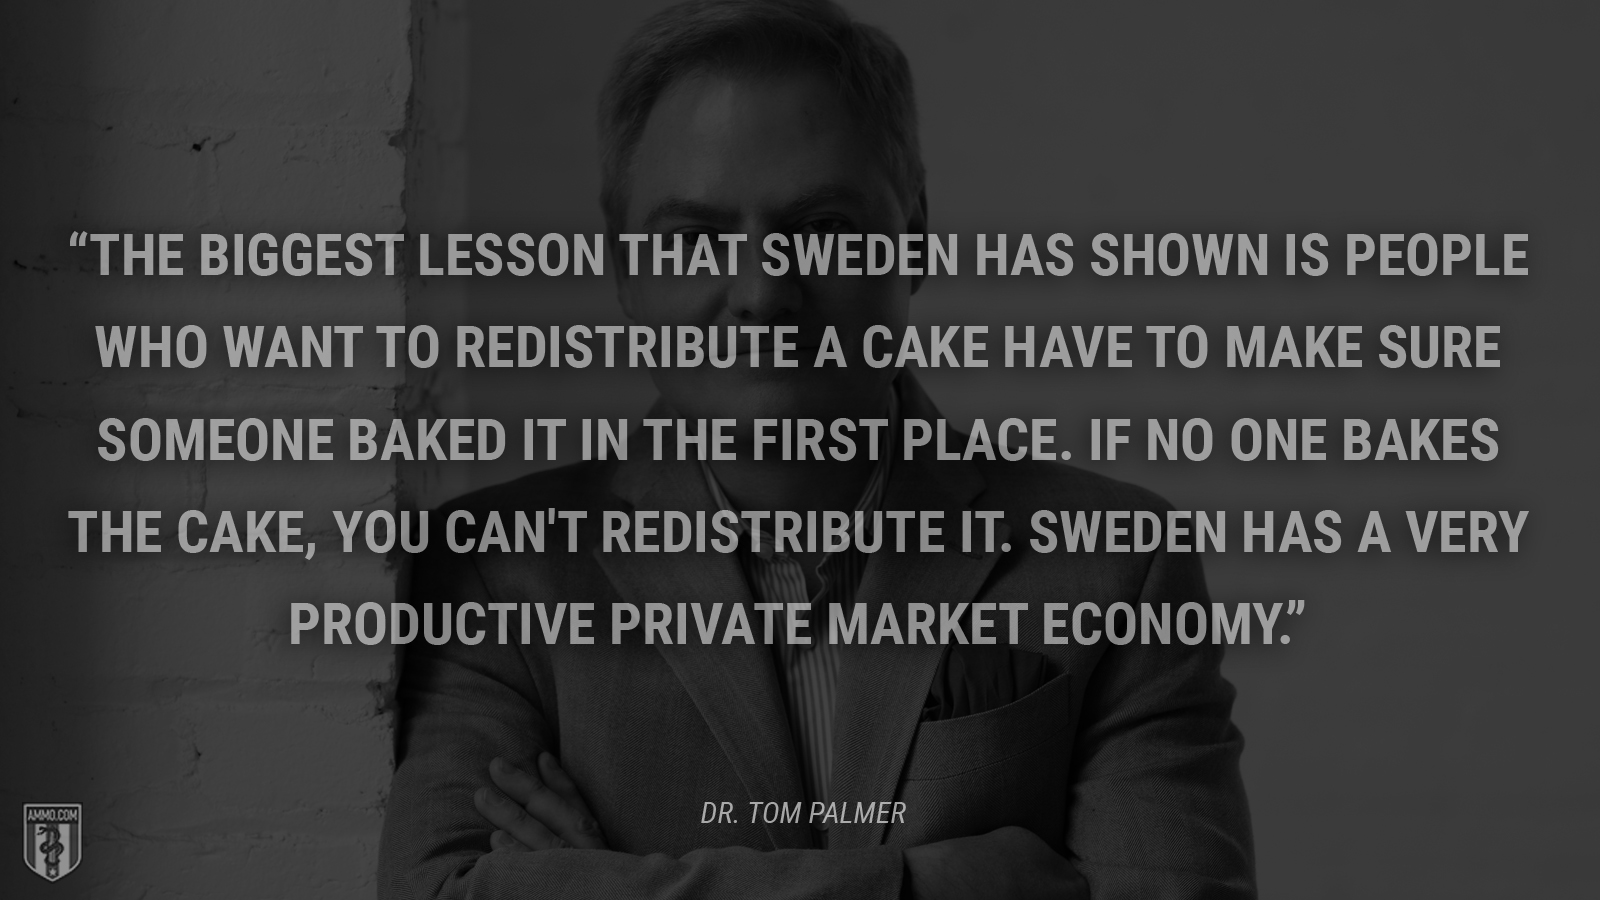 """The biggest lesson that Sweden has shown is people who want to redistribute a cake have to make sure someone baked it in the first place. If no one bakes the cake, you can't redistribute it. Sweden has a very productive private market economy."" - Dr. Tom Palmer"